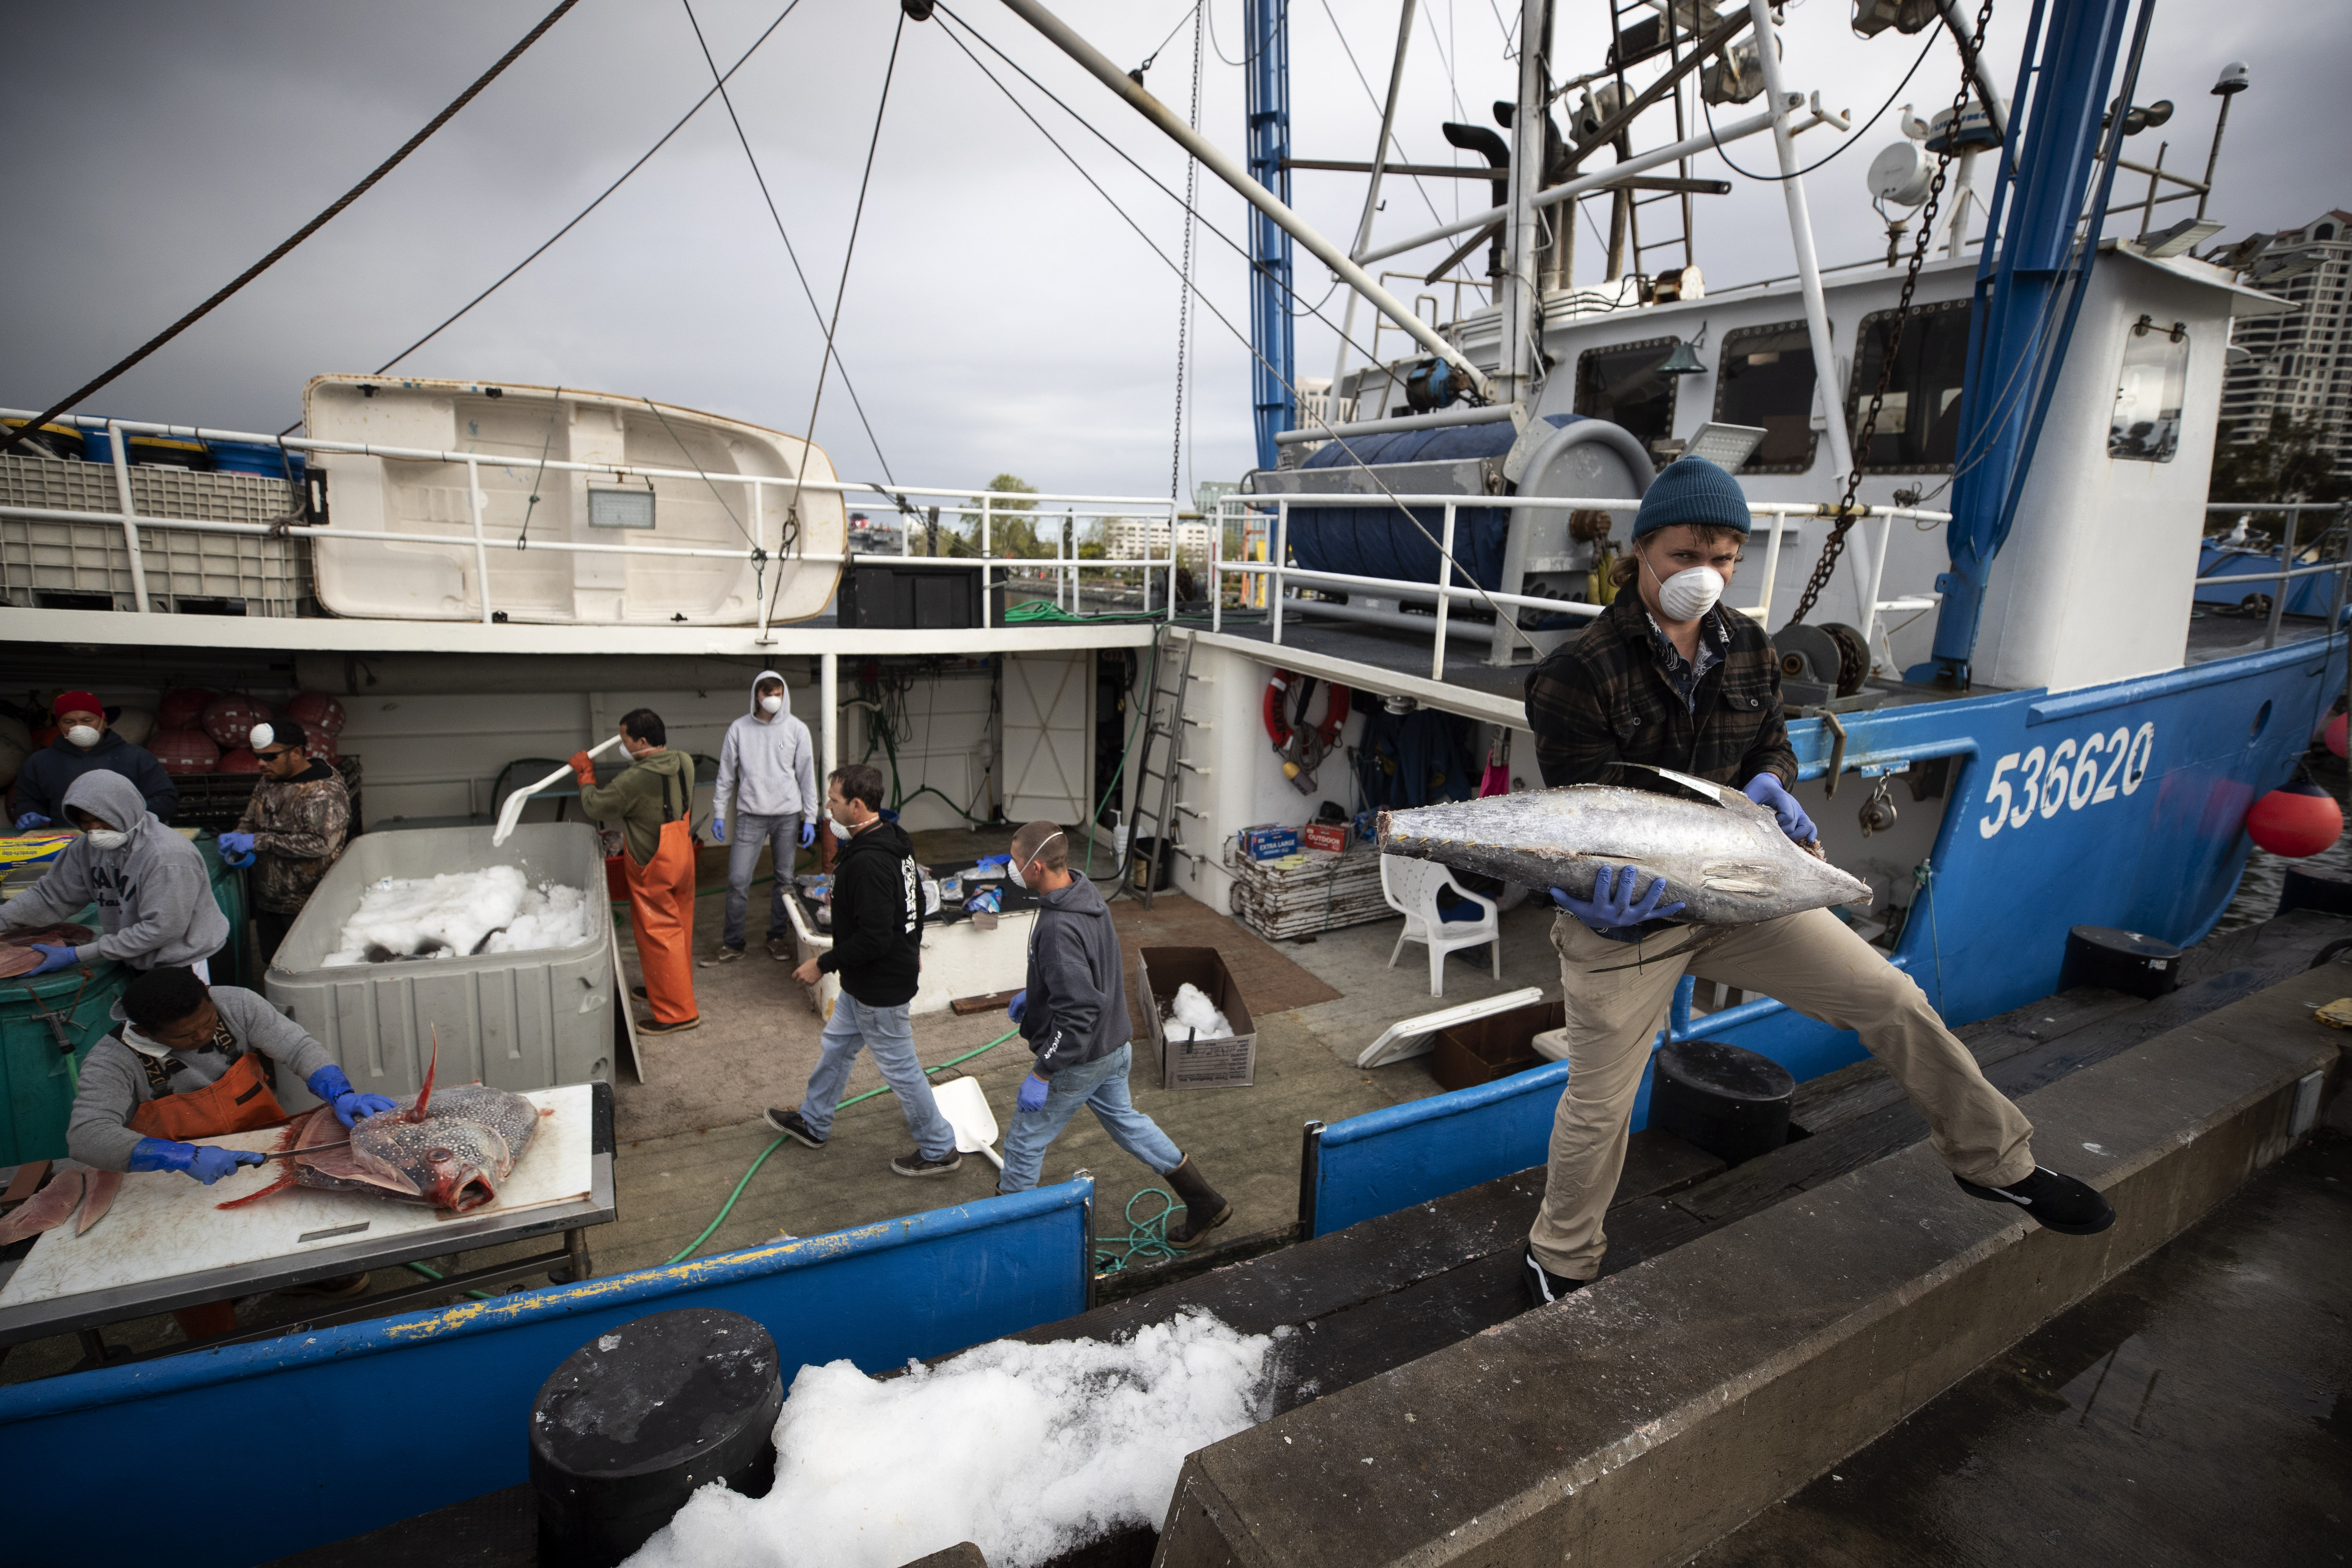 Fishing boat captain Nick Haworth, right, carries tuna to a dock for sale on March 20, 2020, in San Diego.